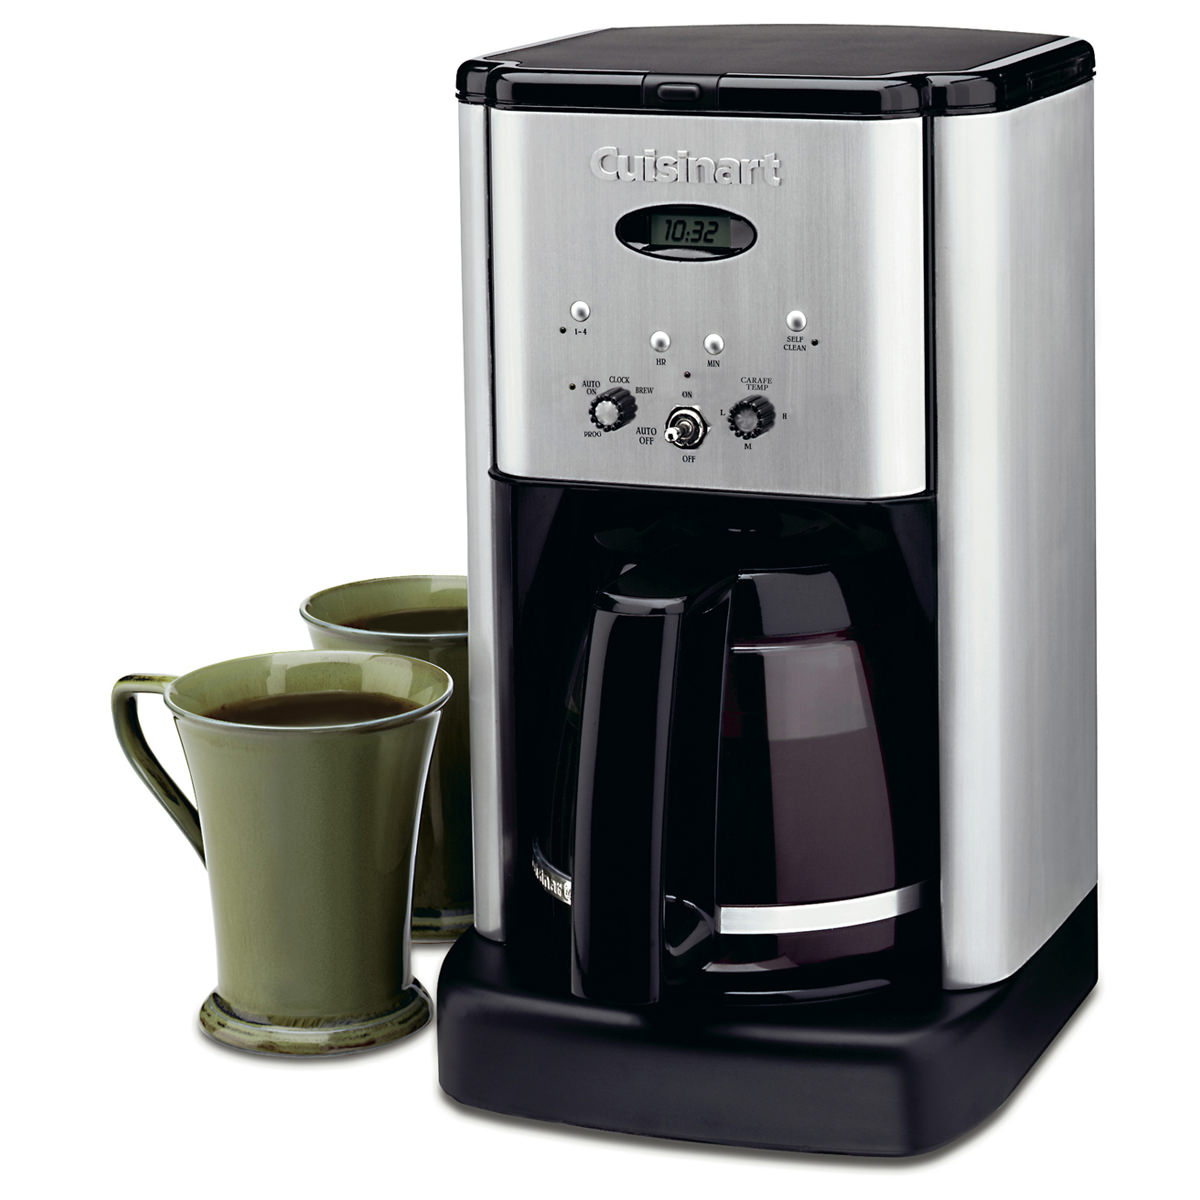 Cuisinart K Cup Coffee Maker Instructions : Brew Central 12-Cup Programmable Coffeemaker Cuisinart